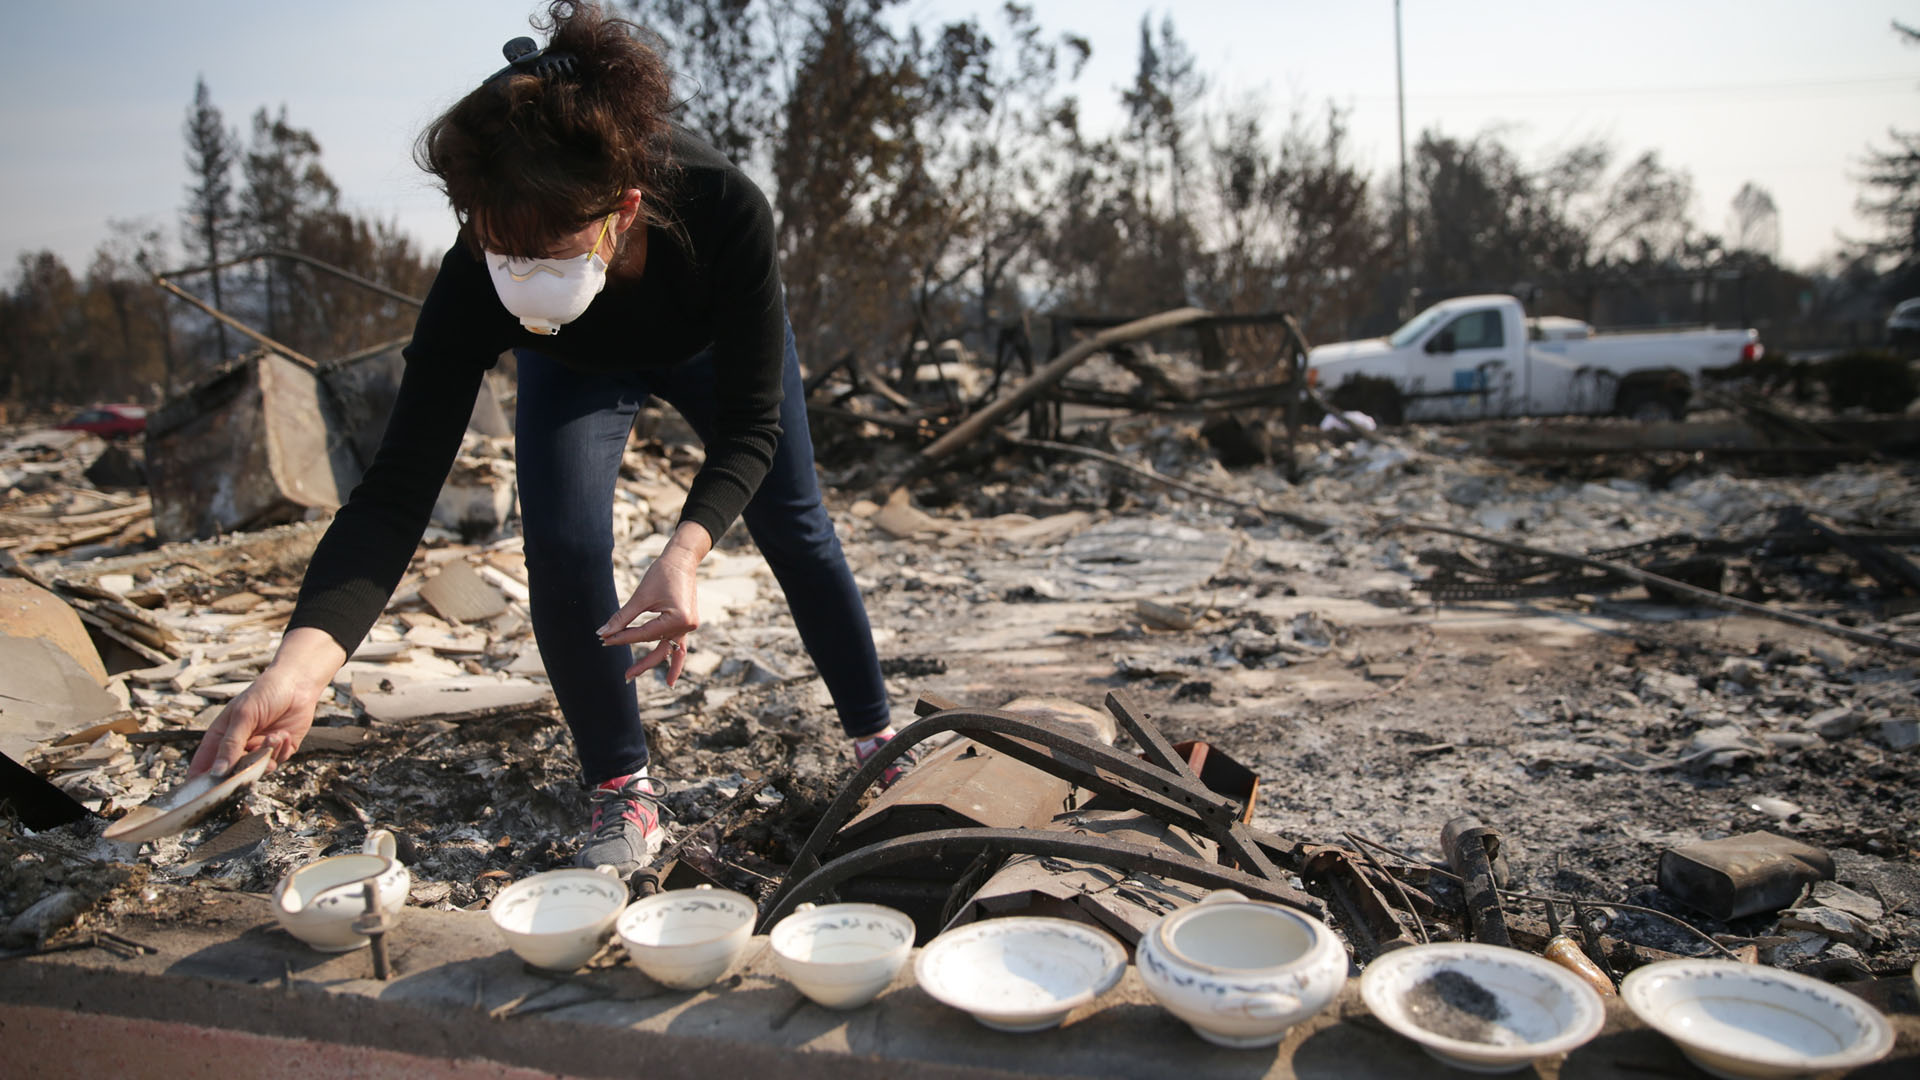 Karen Curzon salvages her grandmother's China set, Santa Rosa, California, wildfires, fire71579294-159532